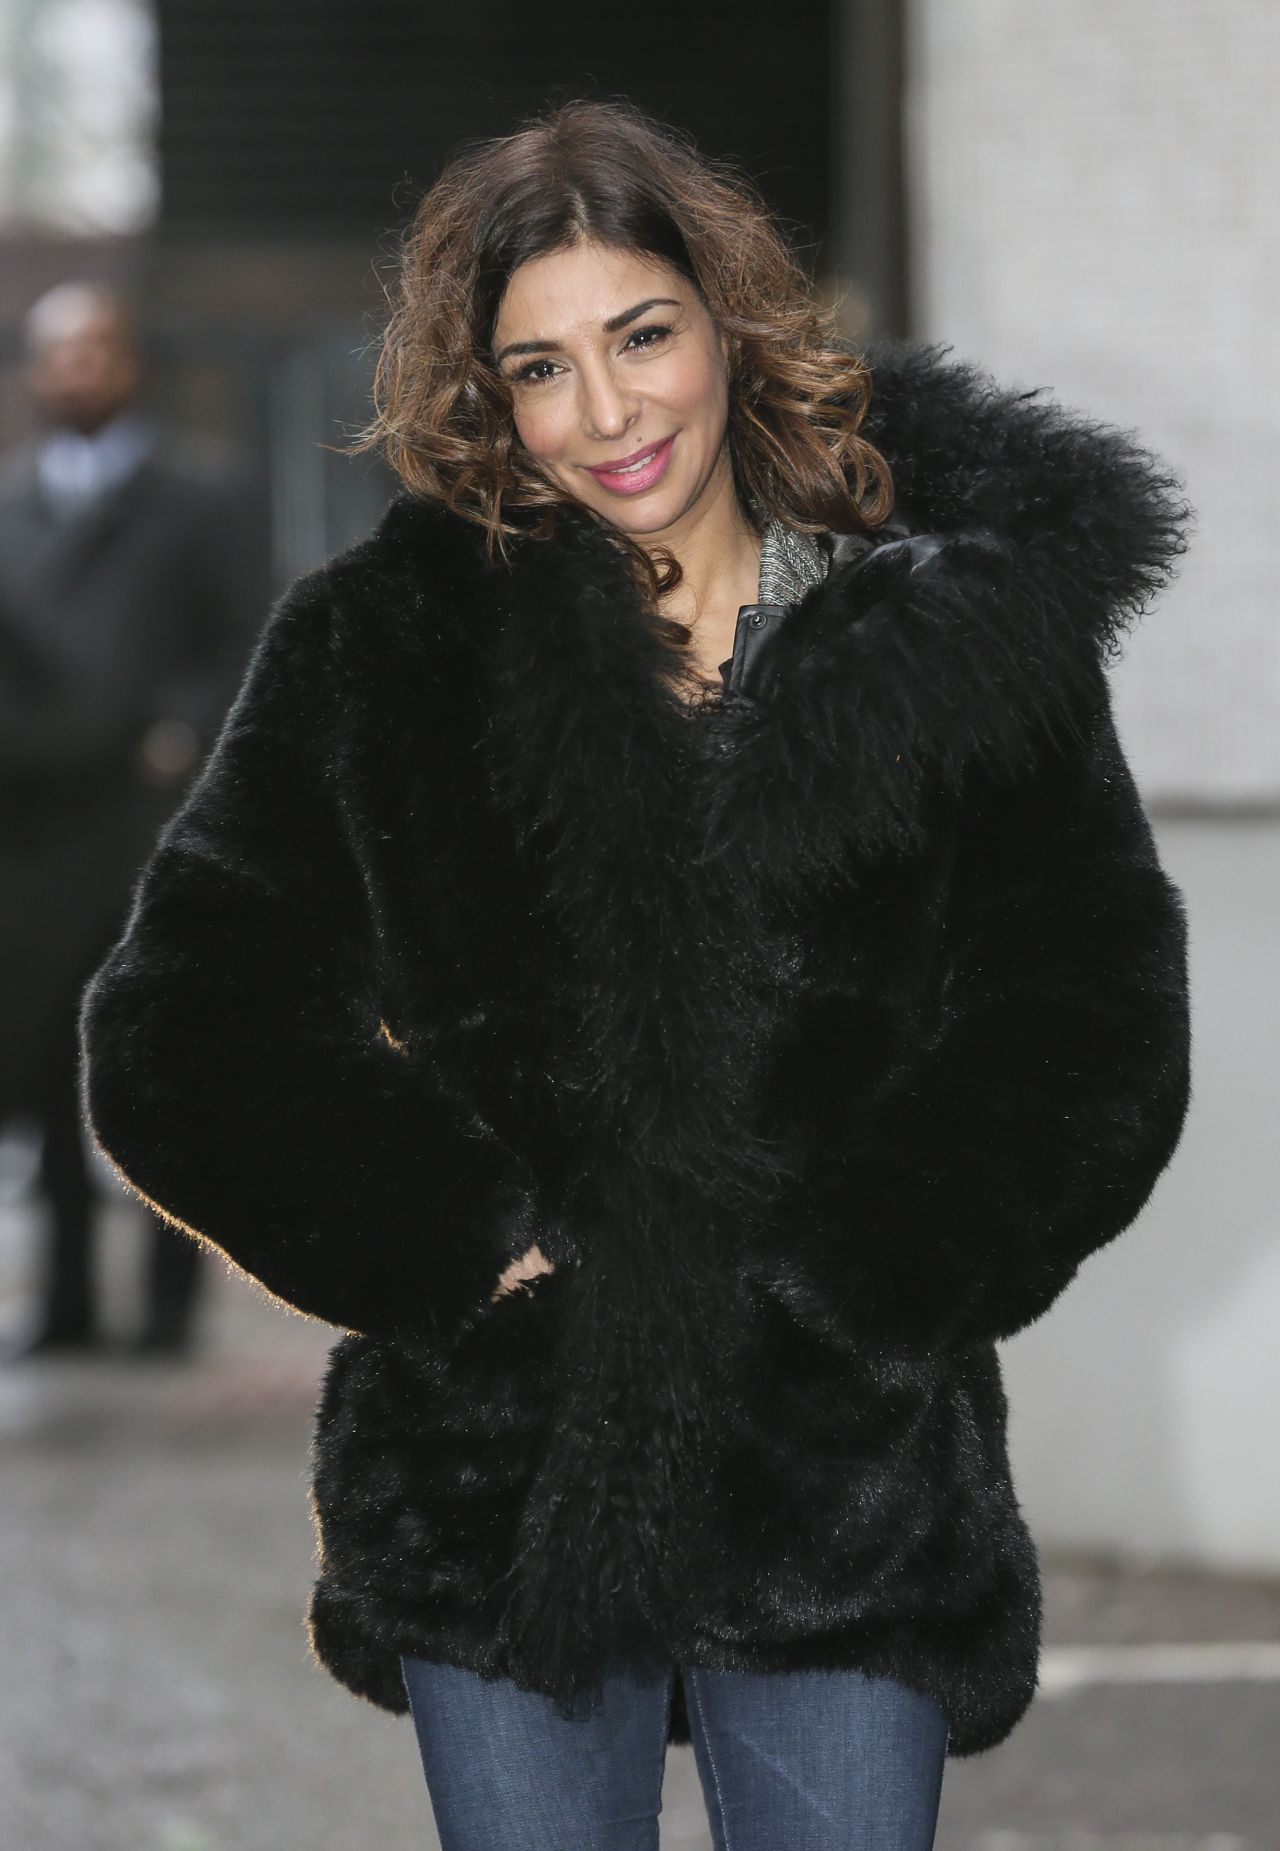 Shobna Gulati Street Style - Leaving the ITV Studios in London, February 2015